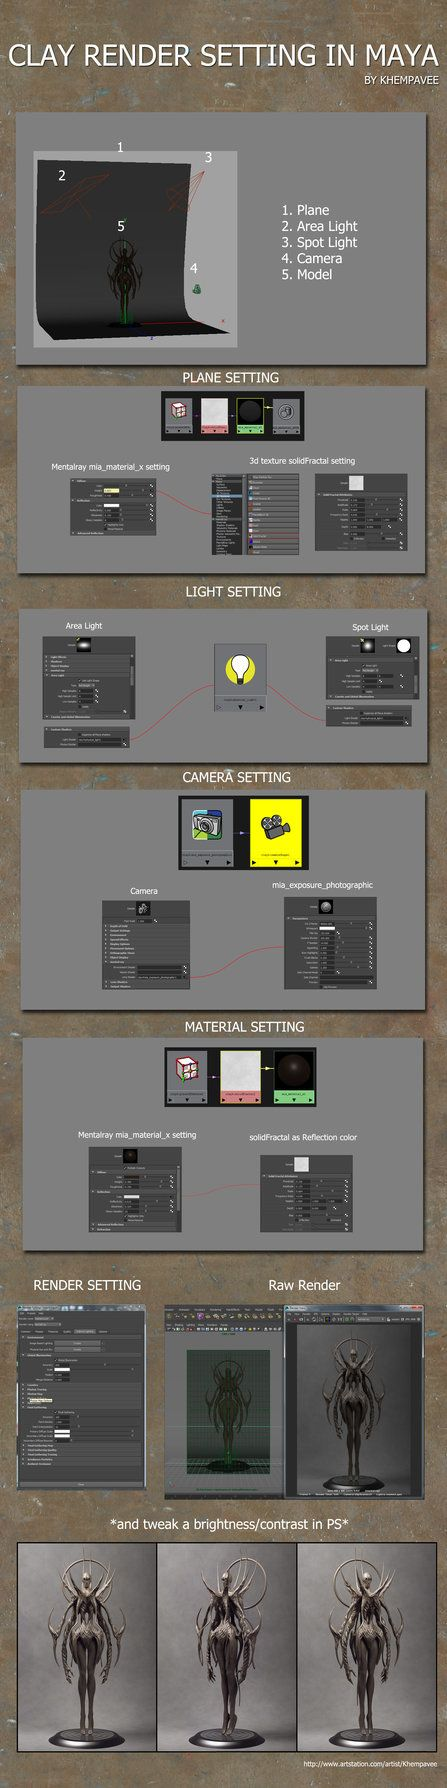 My Clay render setting [MAYA Mentalray] by Khempavee on deviantART